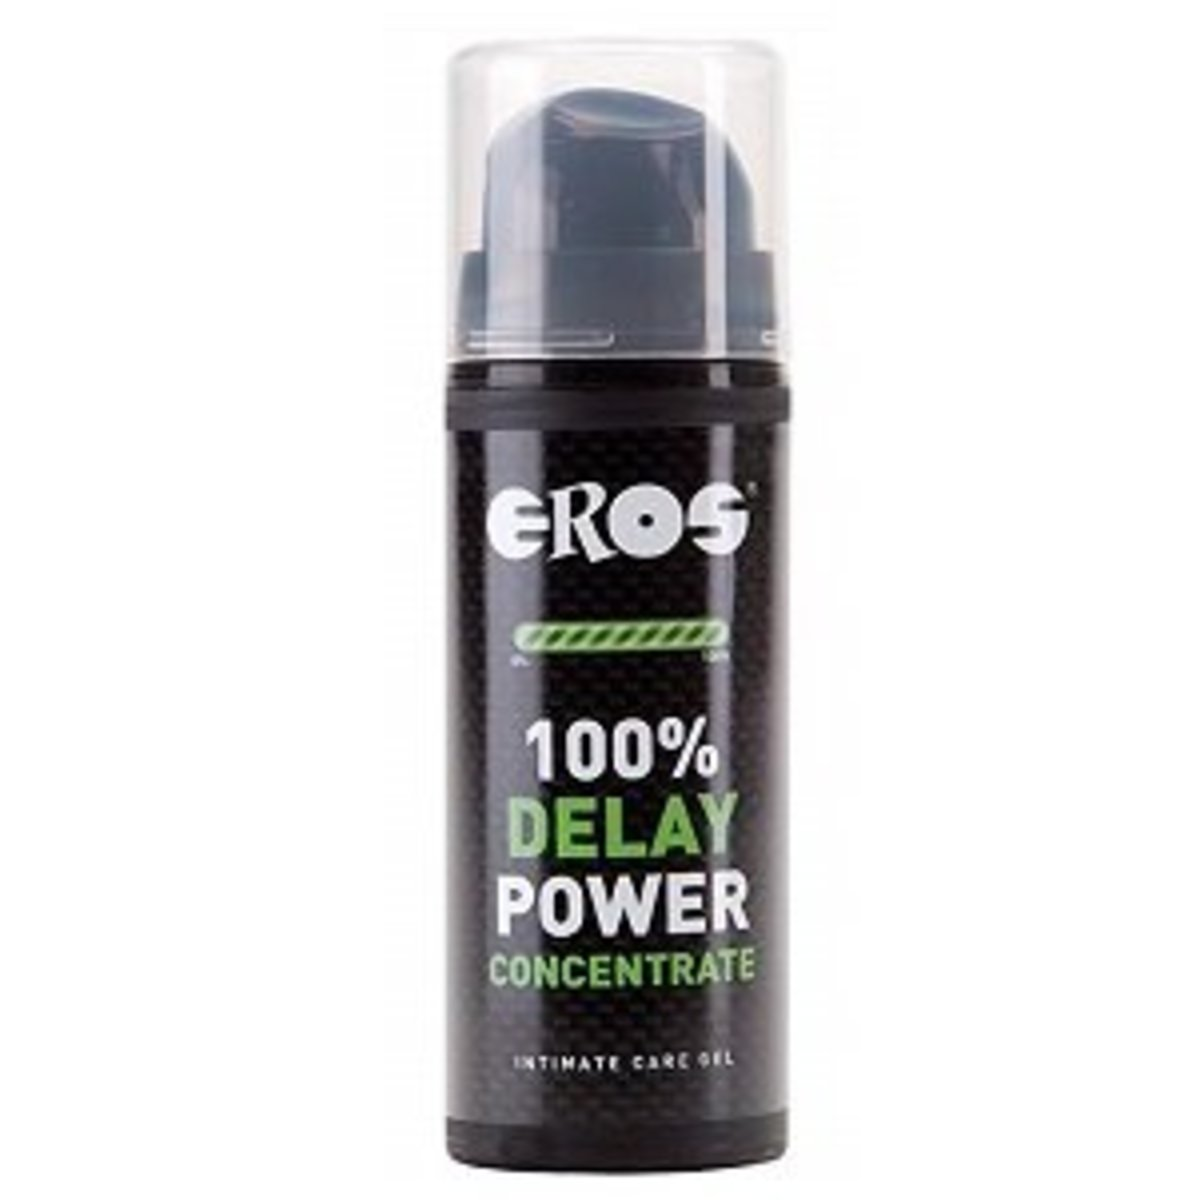 Eros - 100% Delay Power Concentrate Gel- 30ml